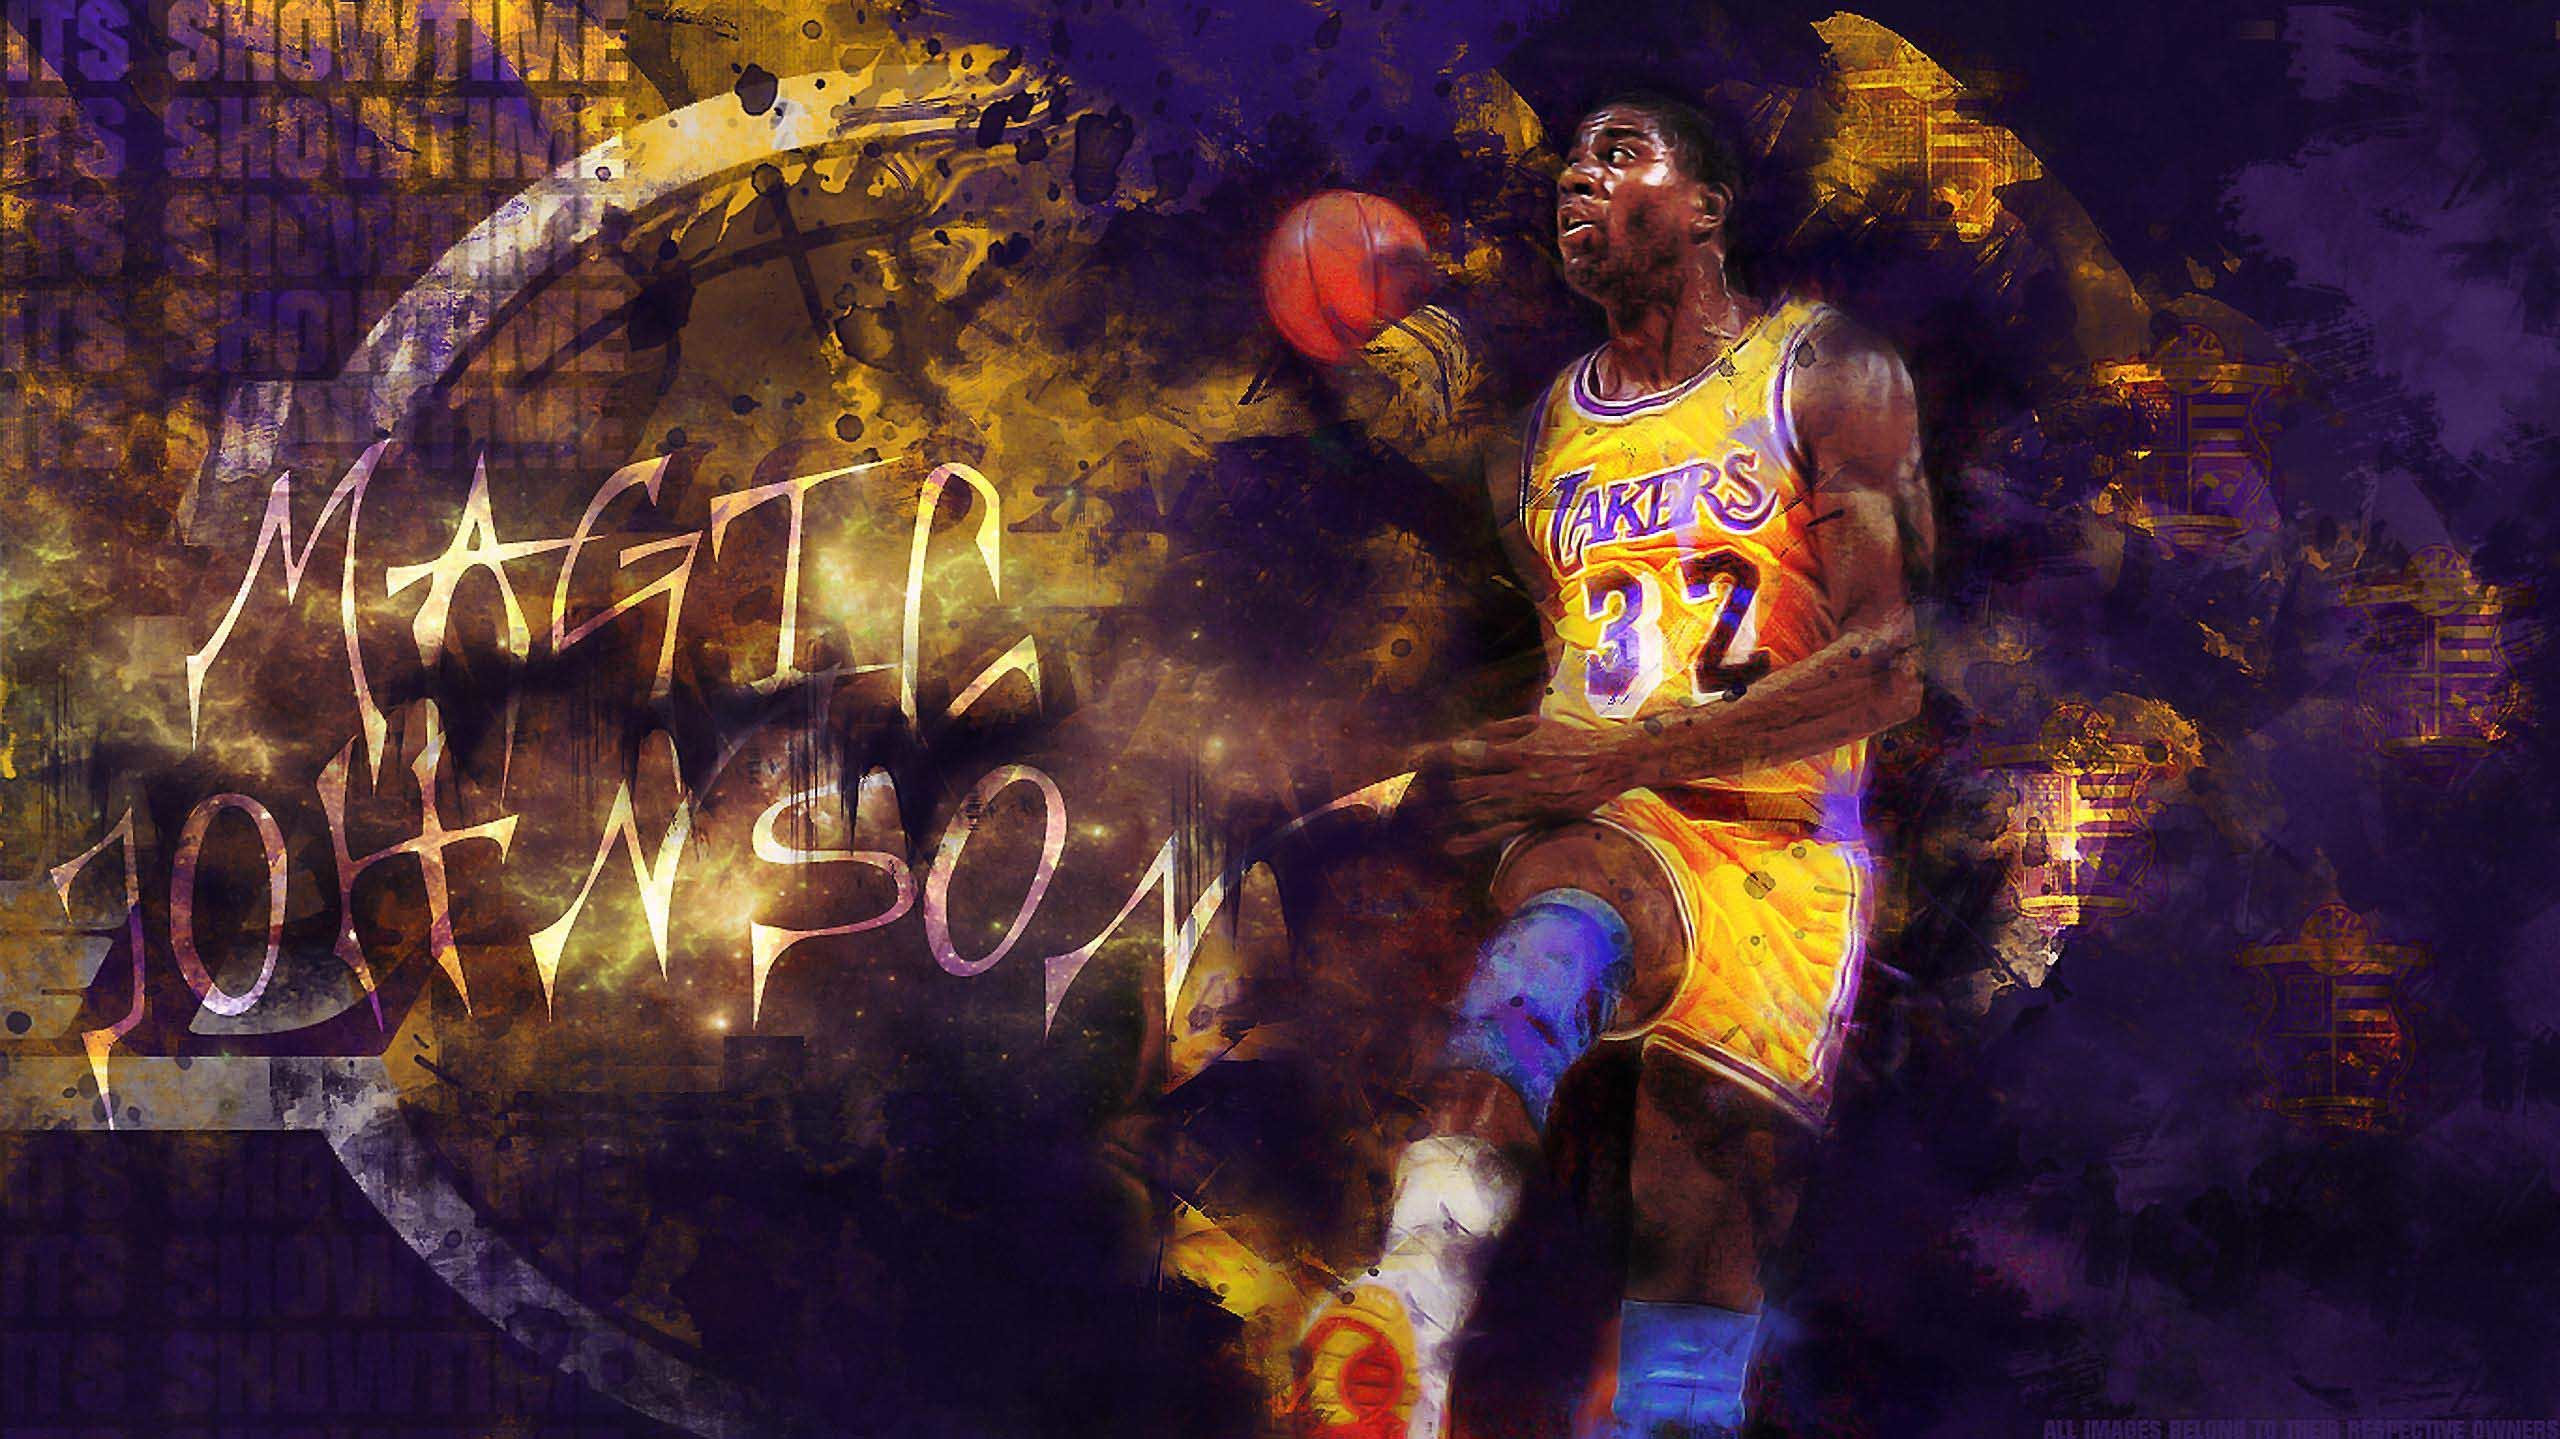 2560x1439 Sport Magic Johnson Basketball Player Free Screensaver Wallpaper 2560×1439